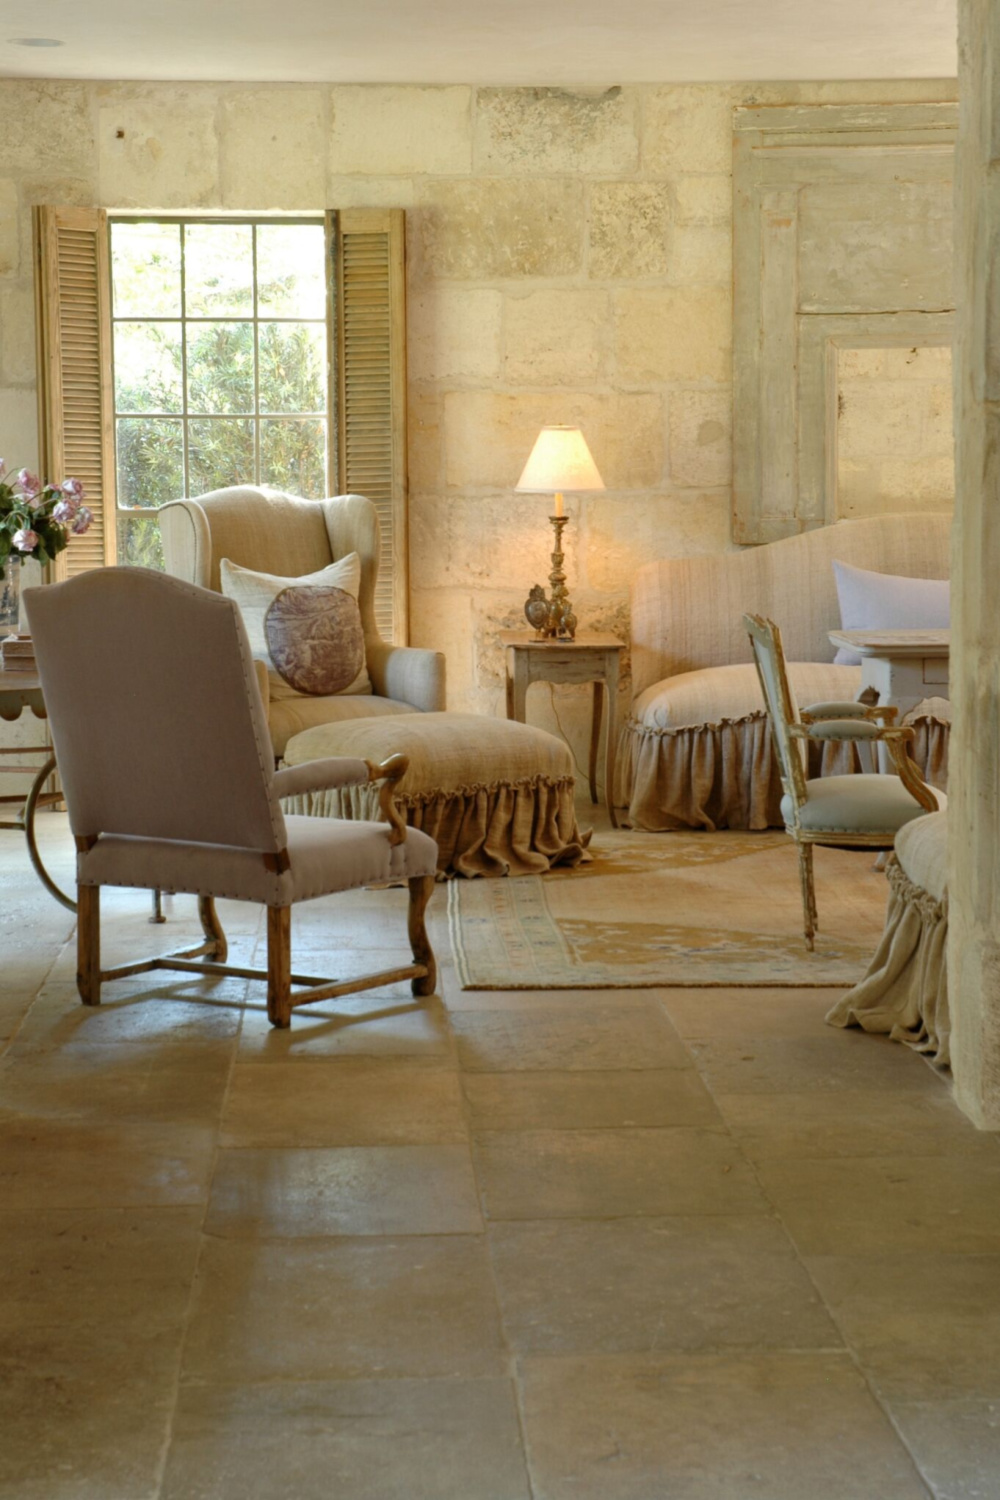 Limestone floors and walls in a French living room - Chateau Domingue Timeless European Elegance and French farmhouse style converge in this house tour of founder Ruth Gay's home on Hello Lovely. Reclaimed stone, antique doors and mantels, and one of a kind architectural elements. #housetour #frenchcountry #frenchfarmhouse #europeanfarmhouse #chateaudomingue #rusticdecor #pamelapierce #elegantdecor #livingroom